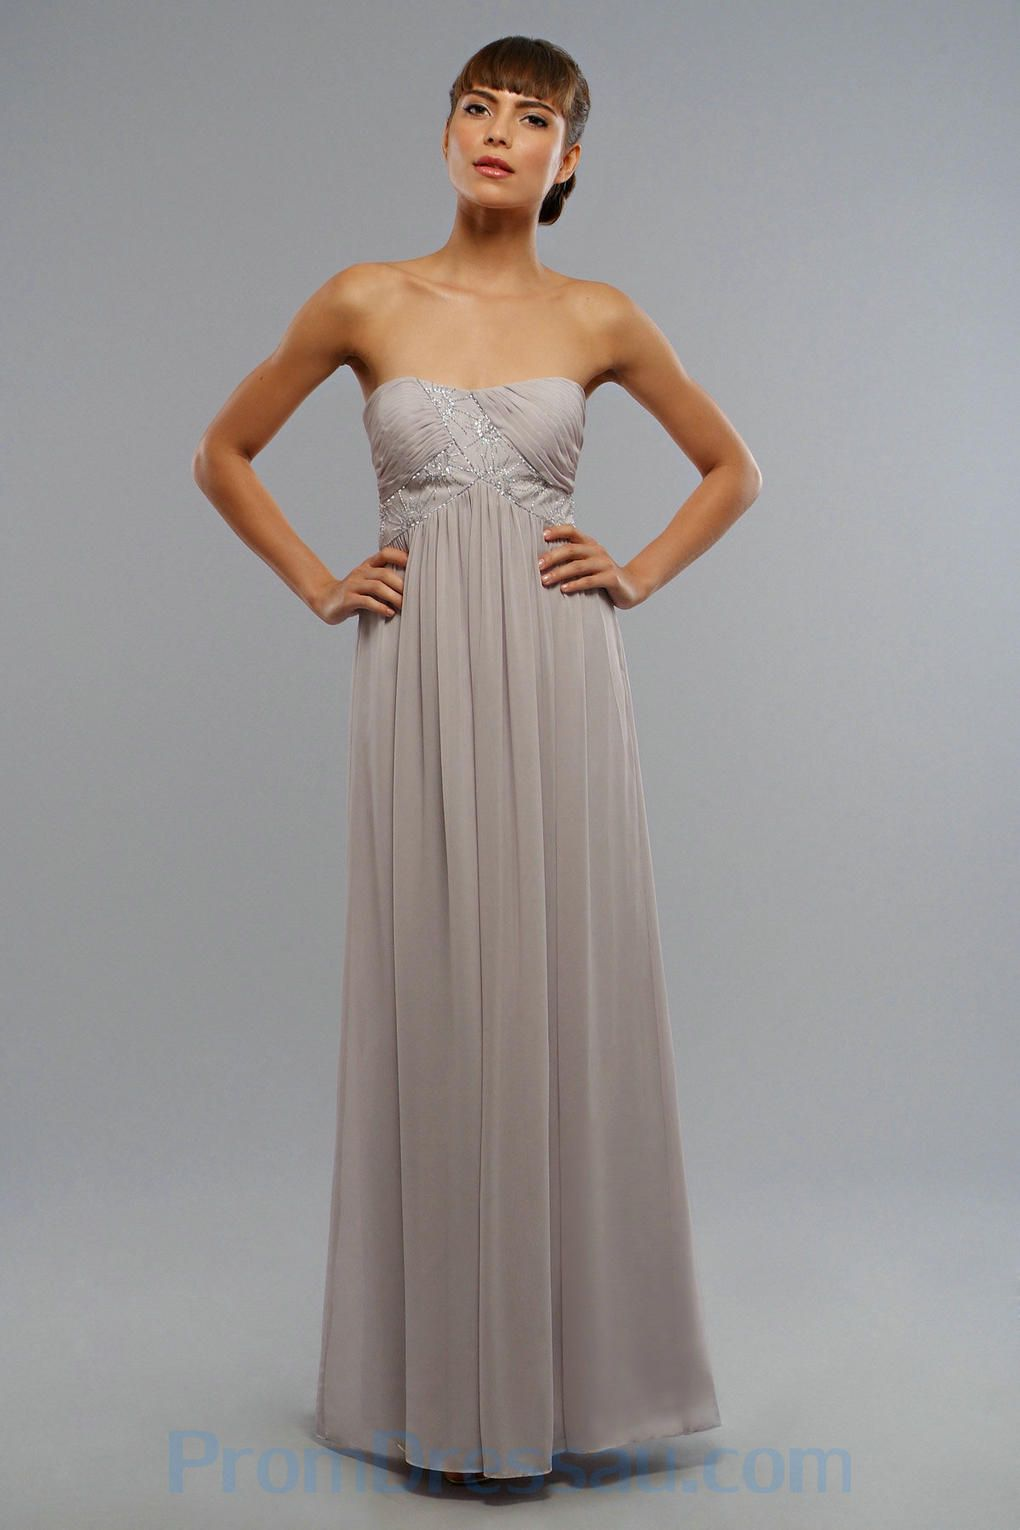 Long Grey Dress Bridesmaid - Ocodea.com